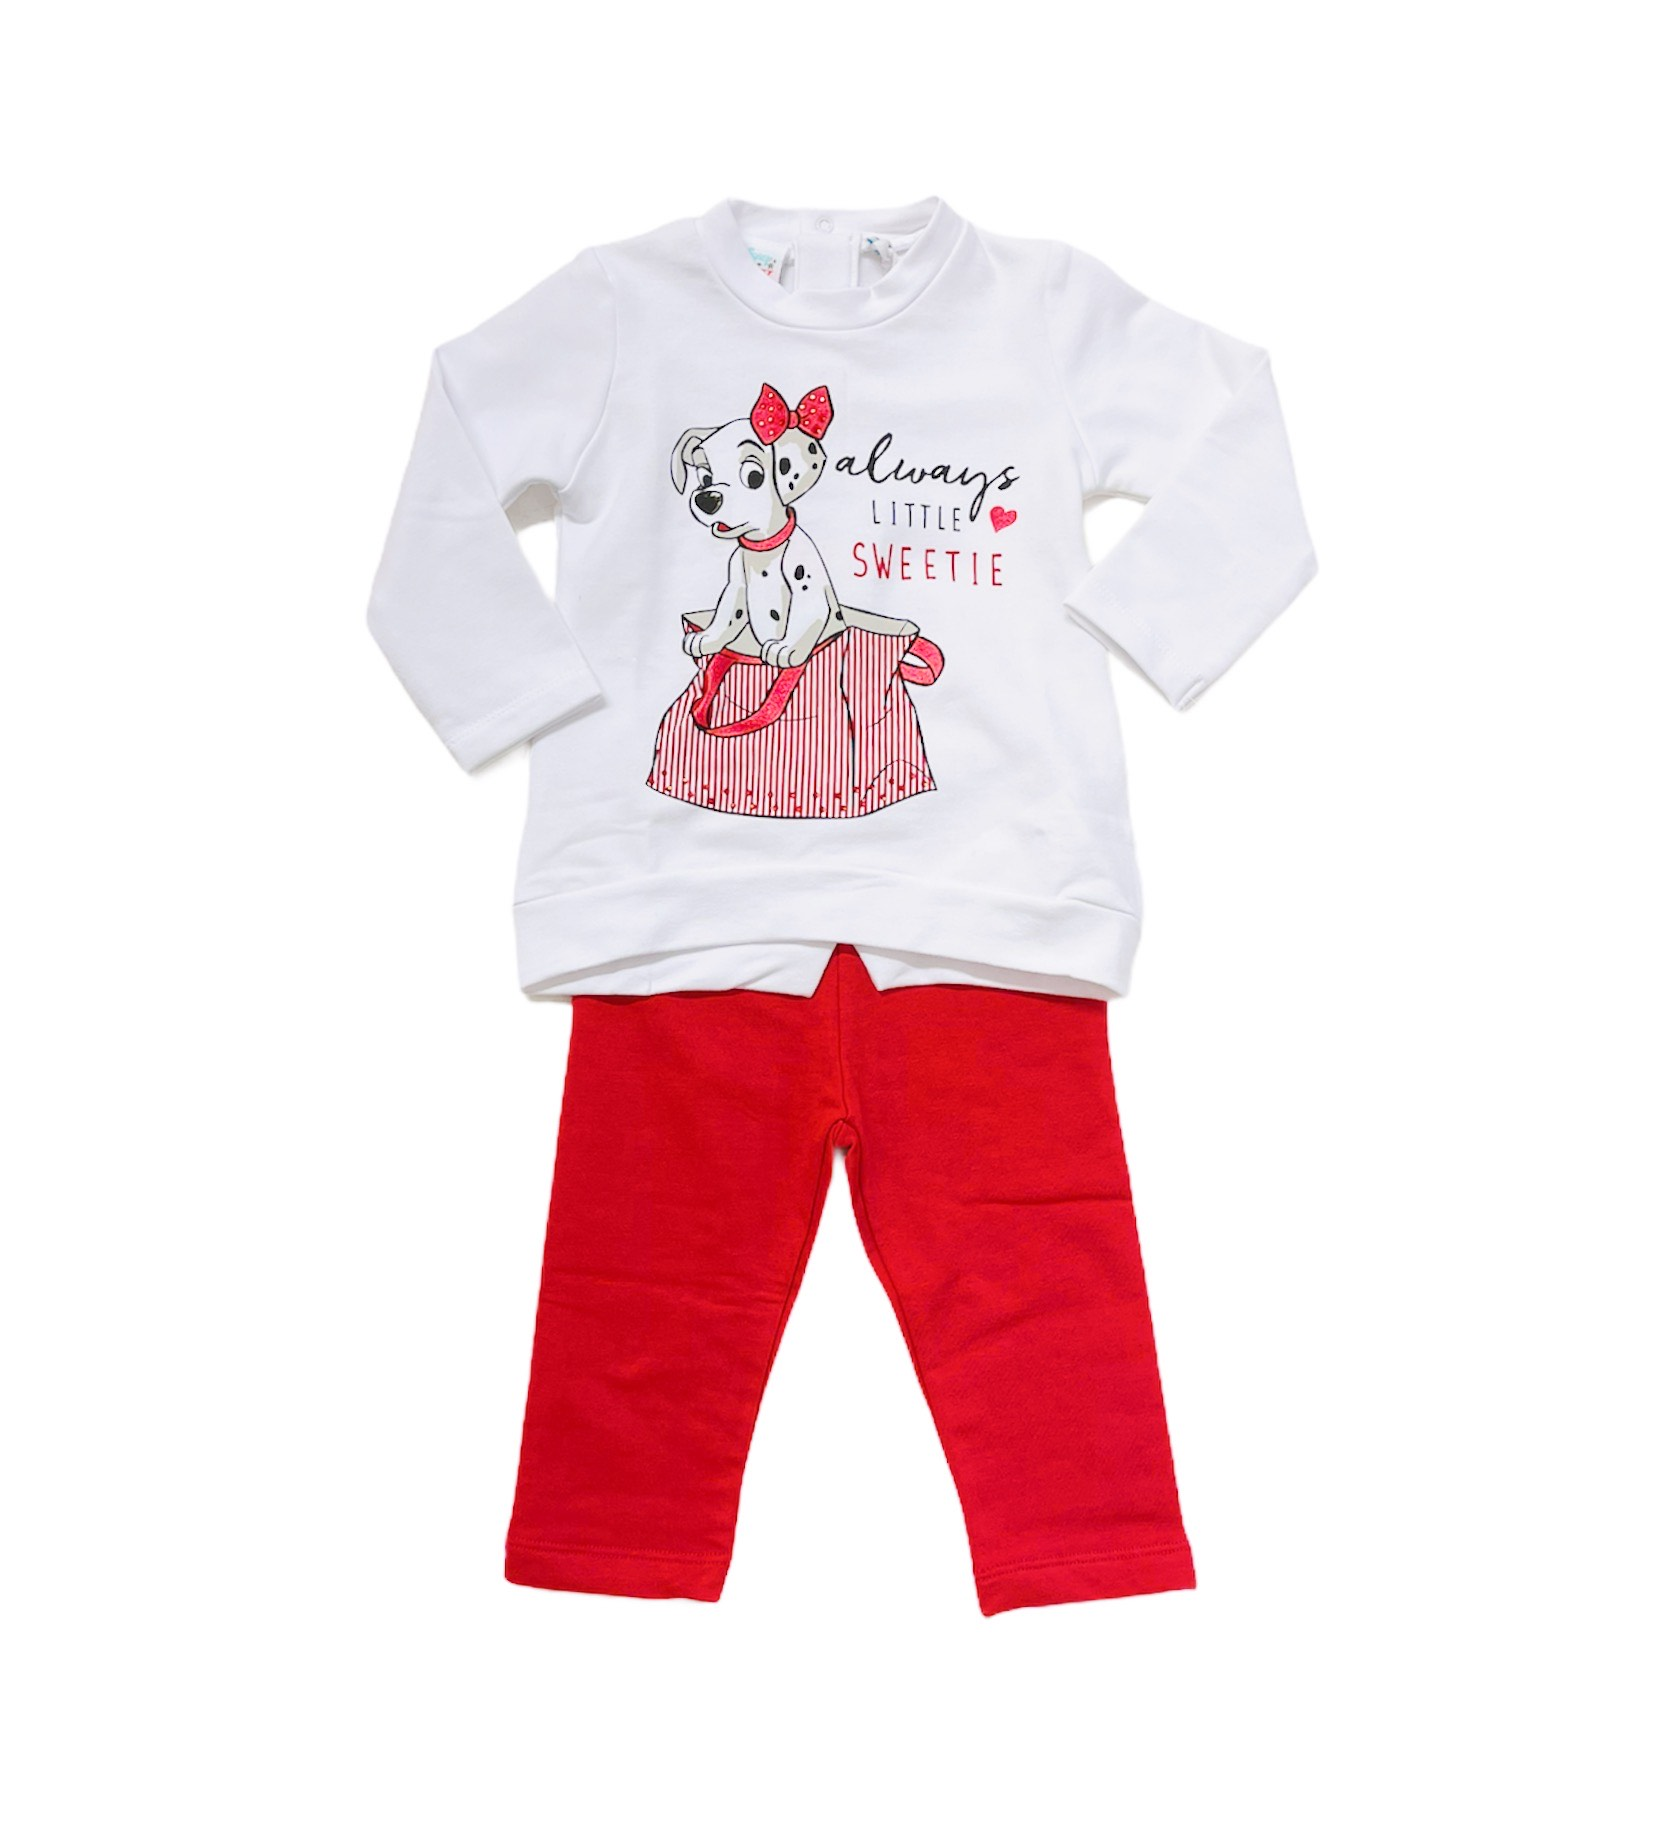 COMPLETO MELBY DISNEY CARICA 101 M. LUNGA 1